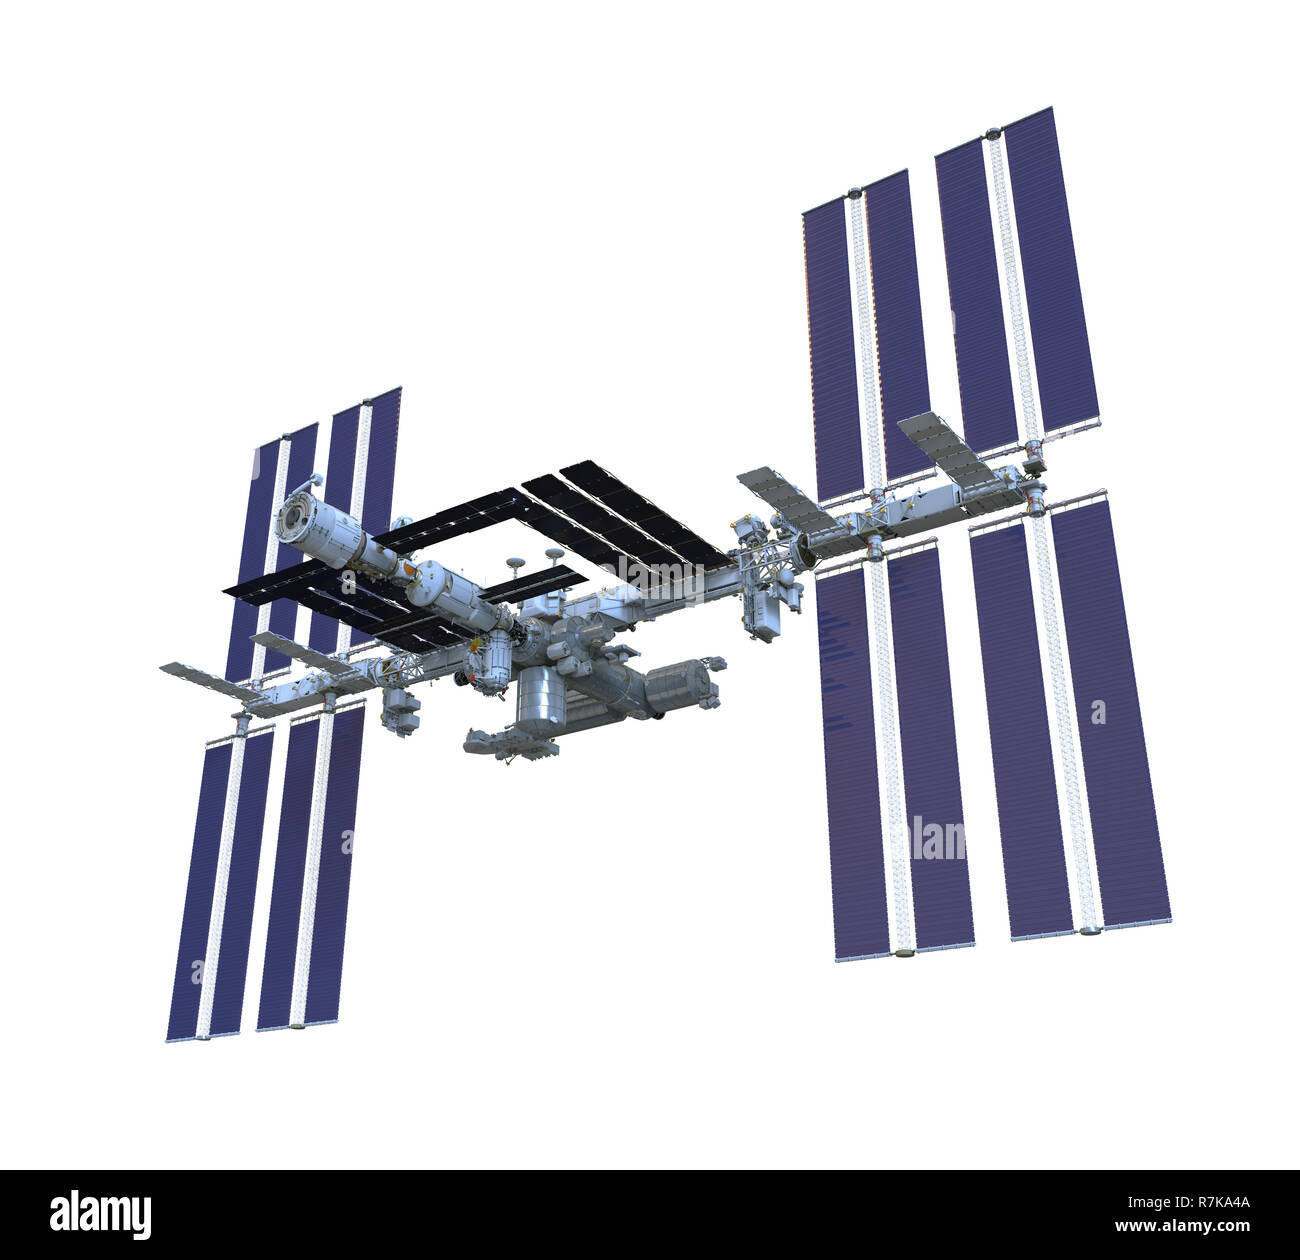 International Space Station Isolated - Stock Image